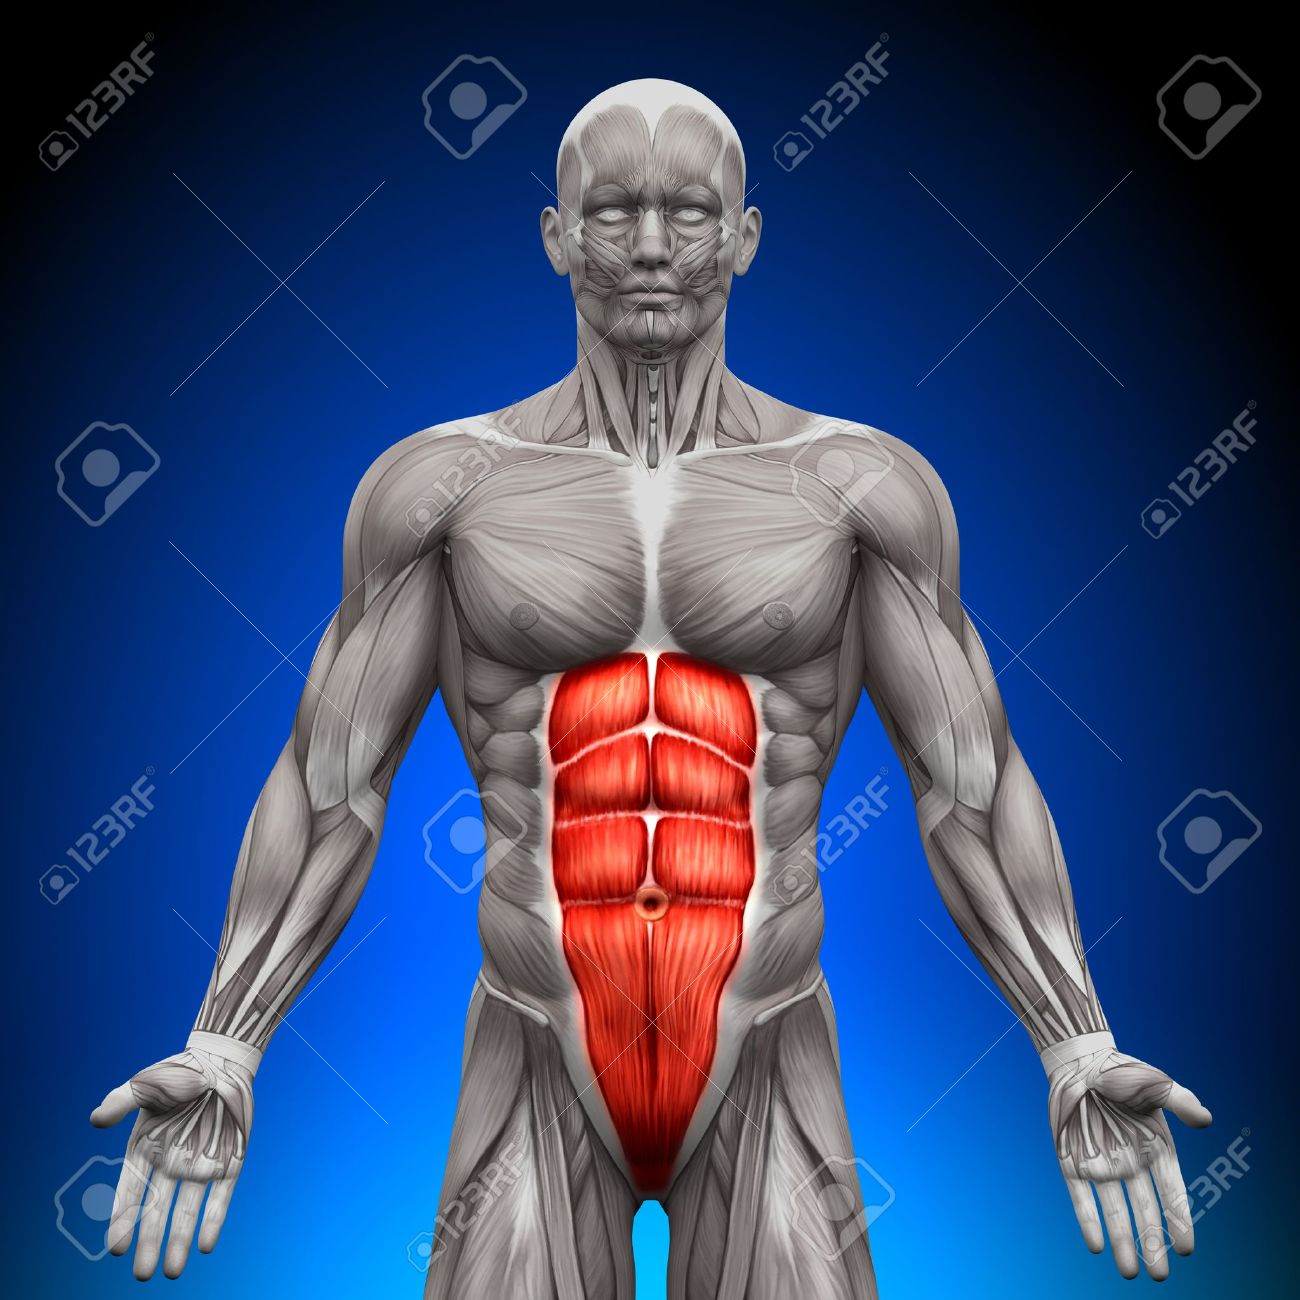 Abs Anatomy Muscles Stock Photo, Picture And Royalty Free Image ...